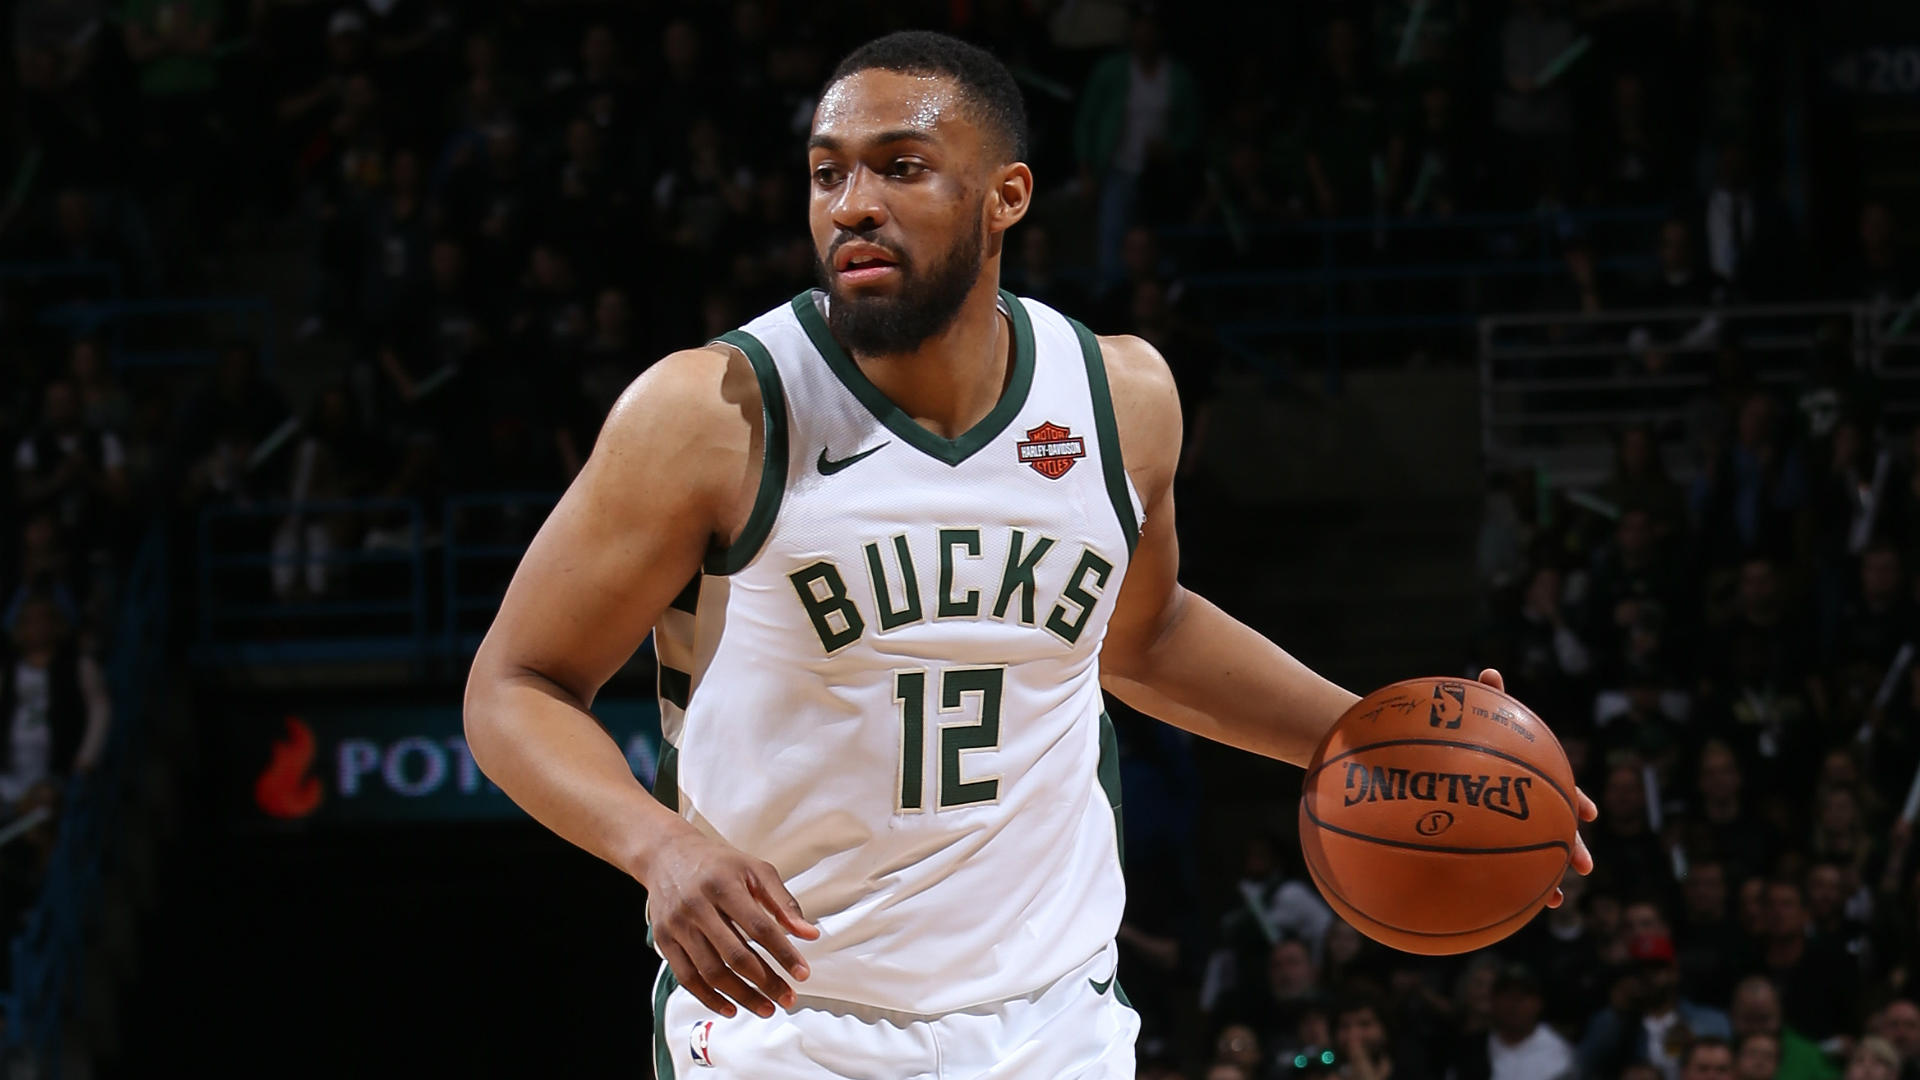 Jabari Parker agrees to sign with Chicago Bulls